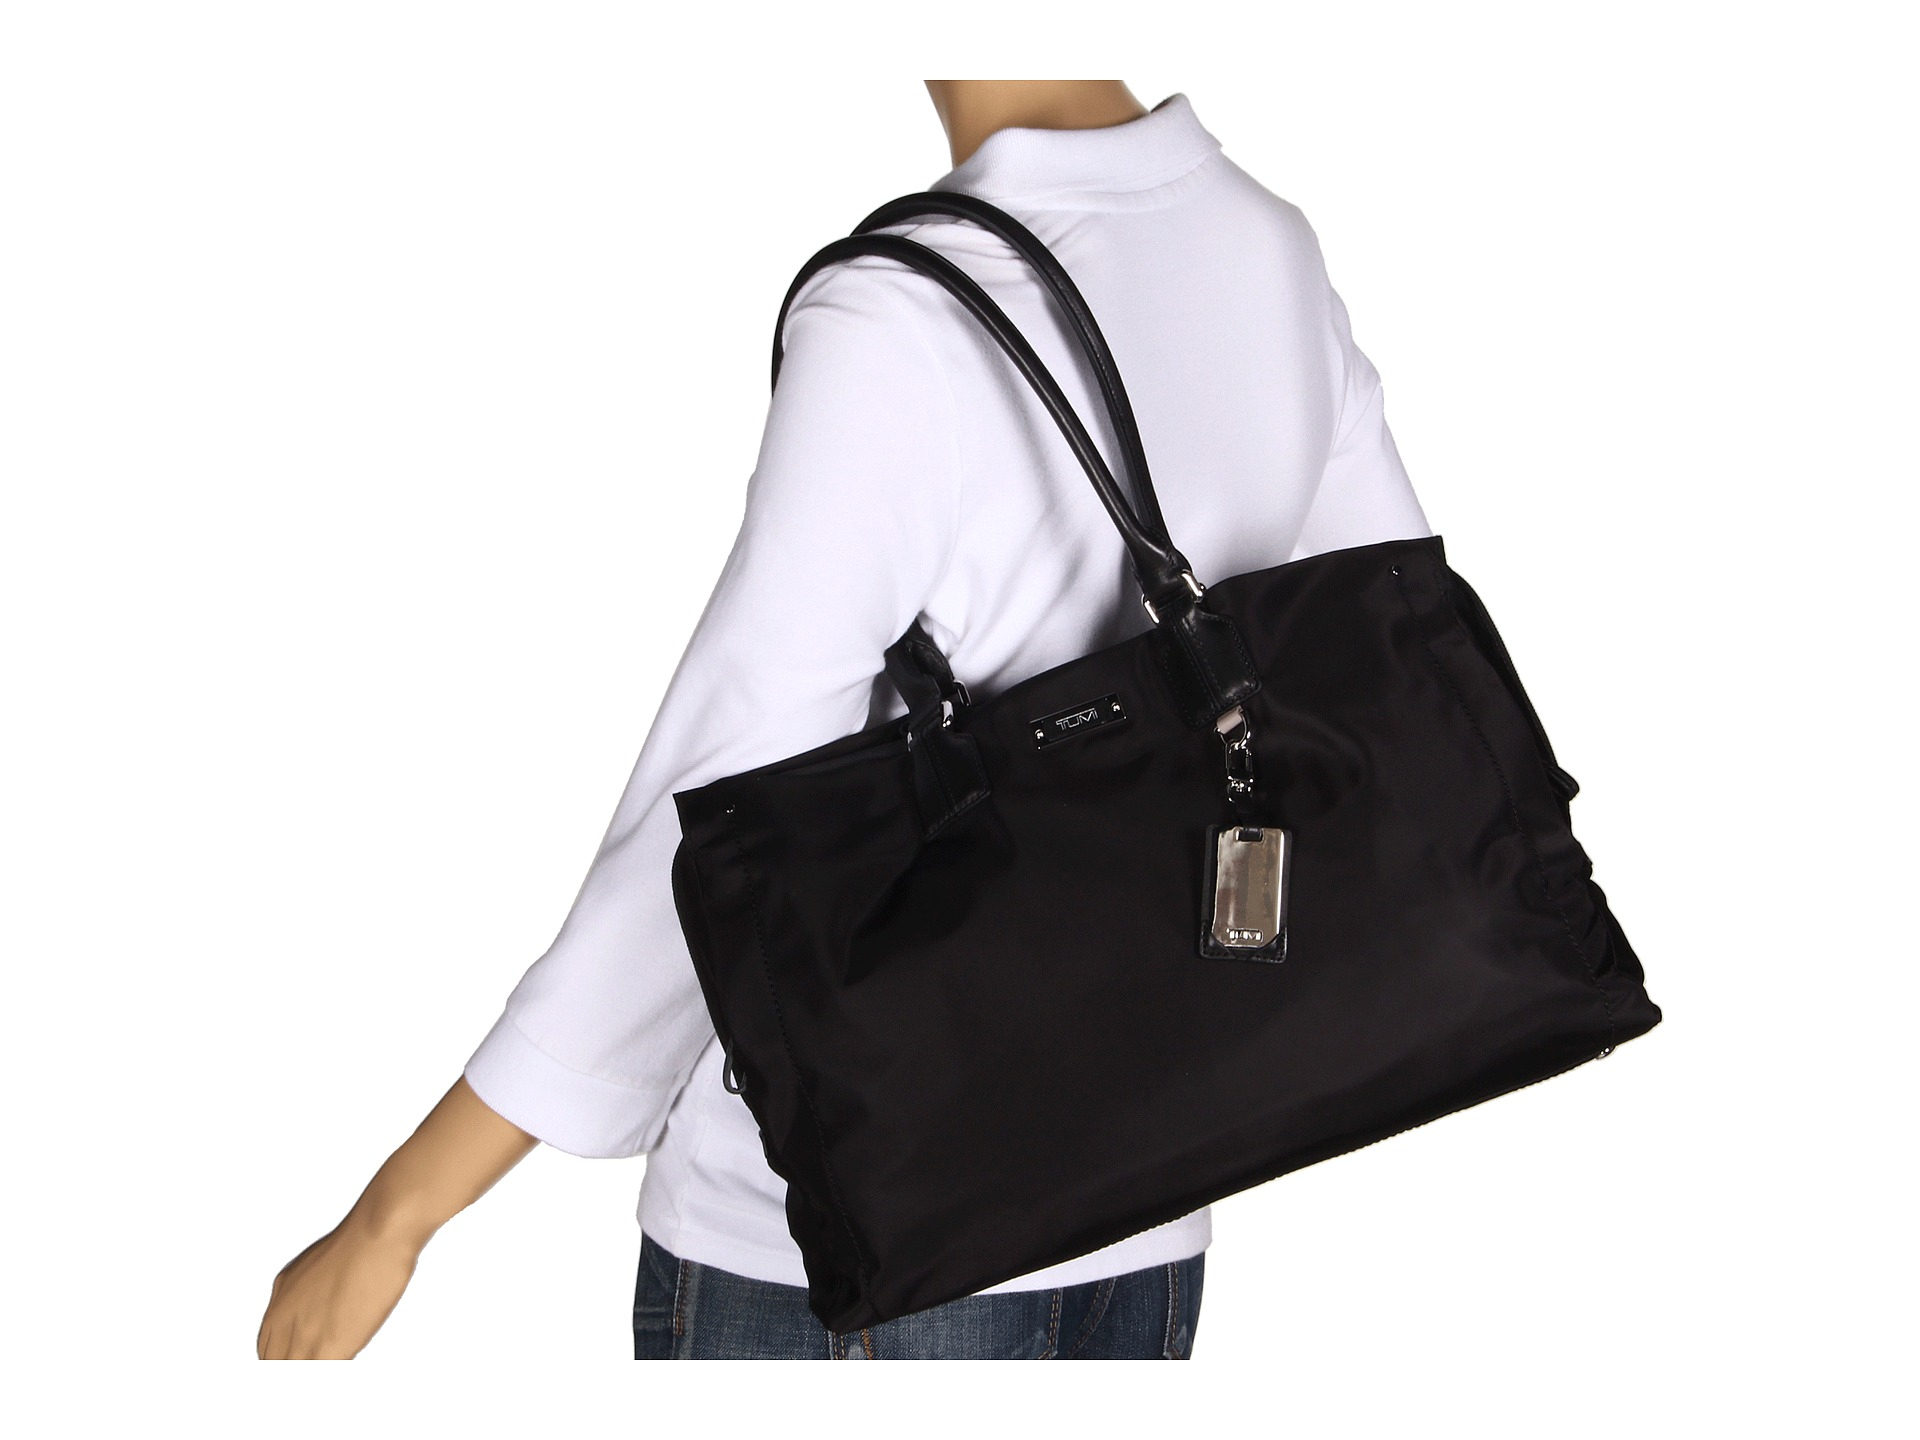 Great Business Travel Bags